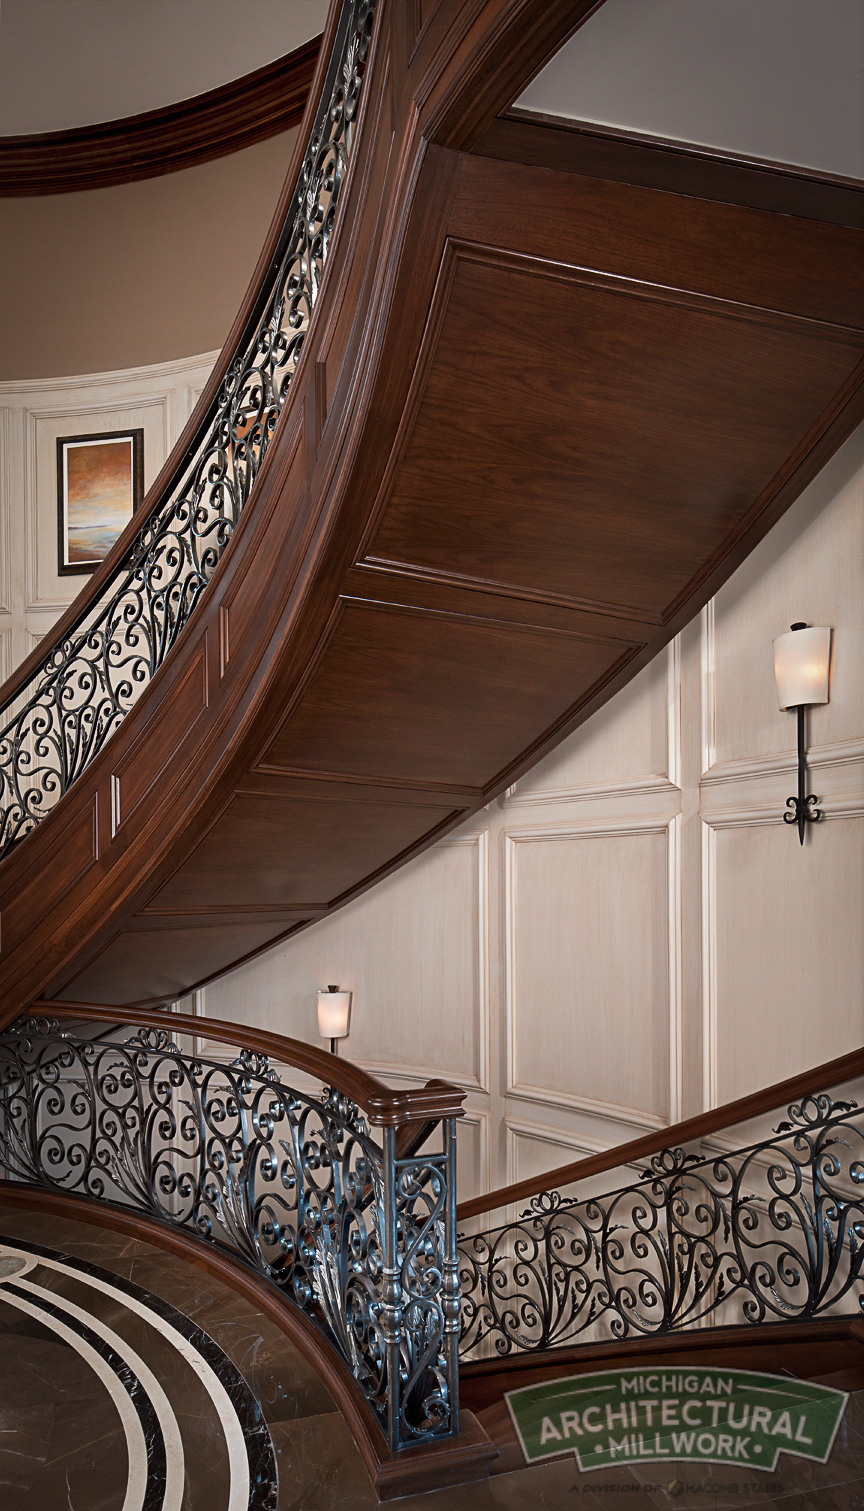 Michigan Architectural Millwork- Moulding and Millwork Photo-25.jpg